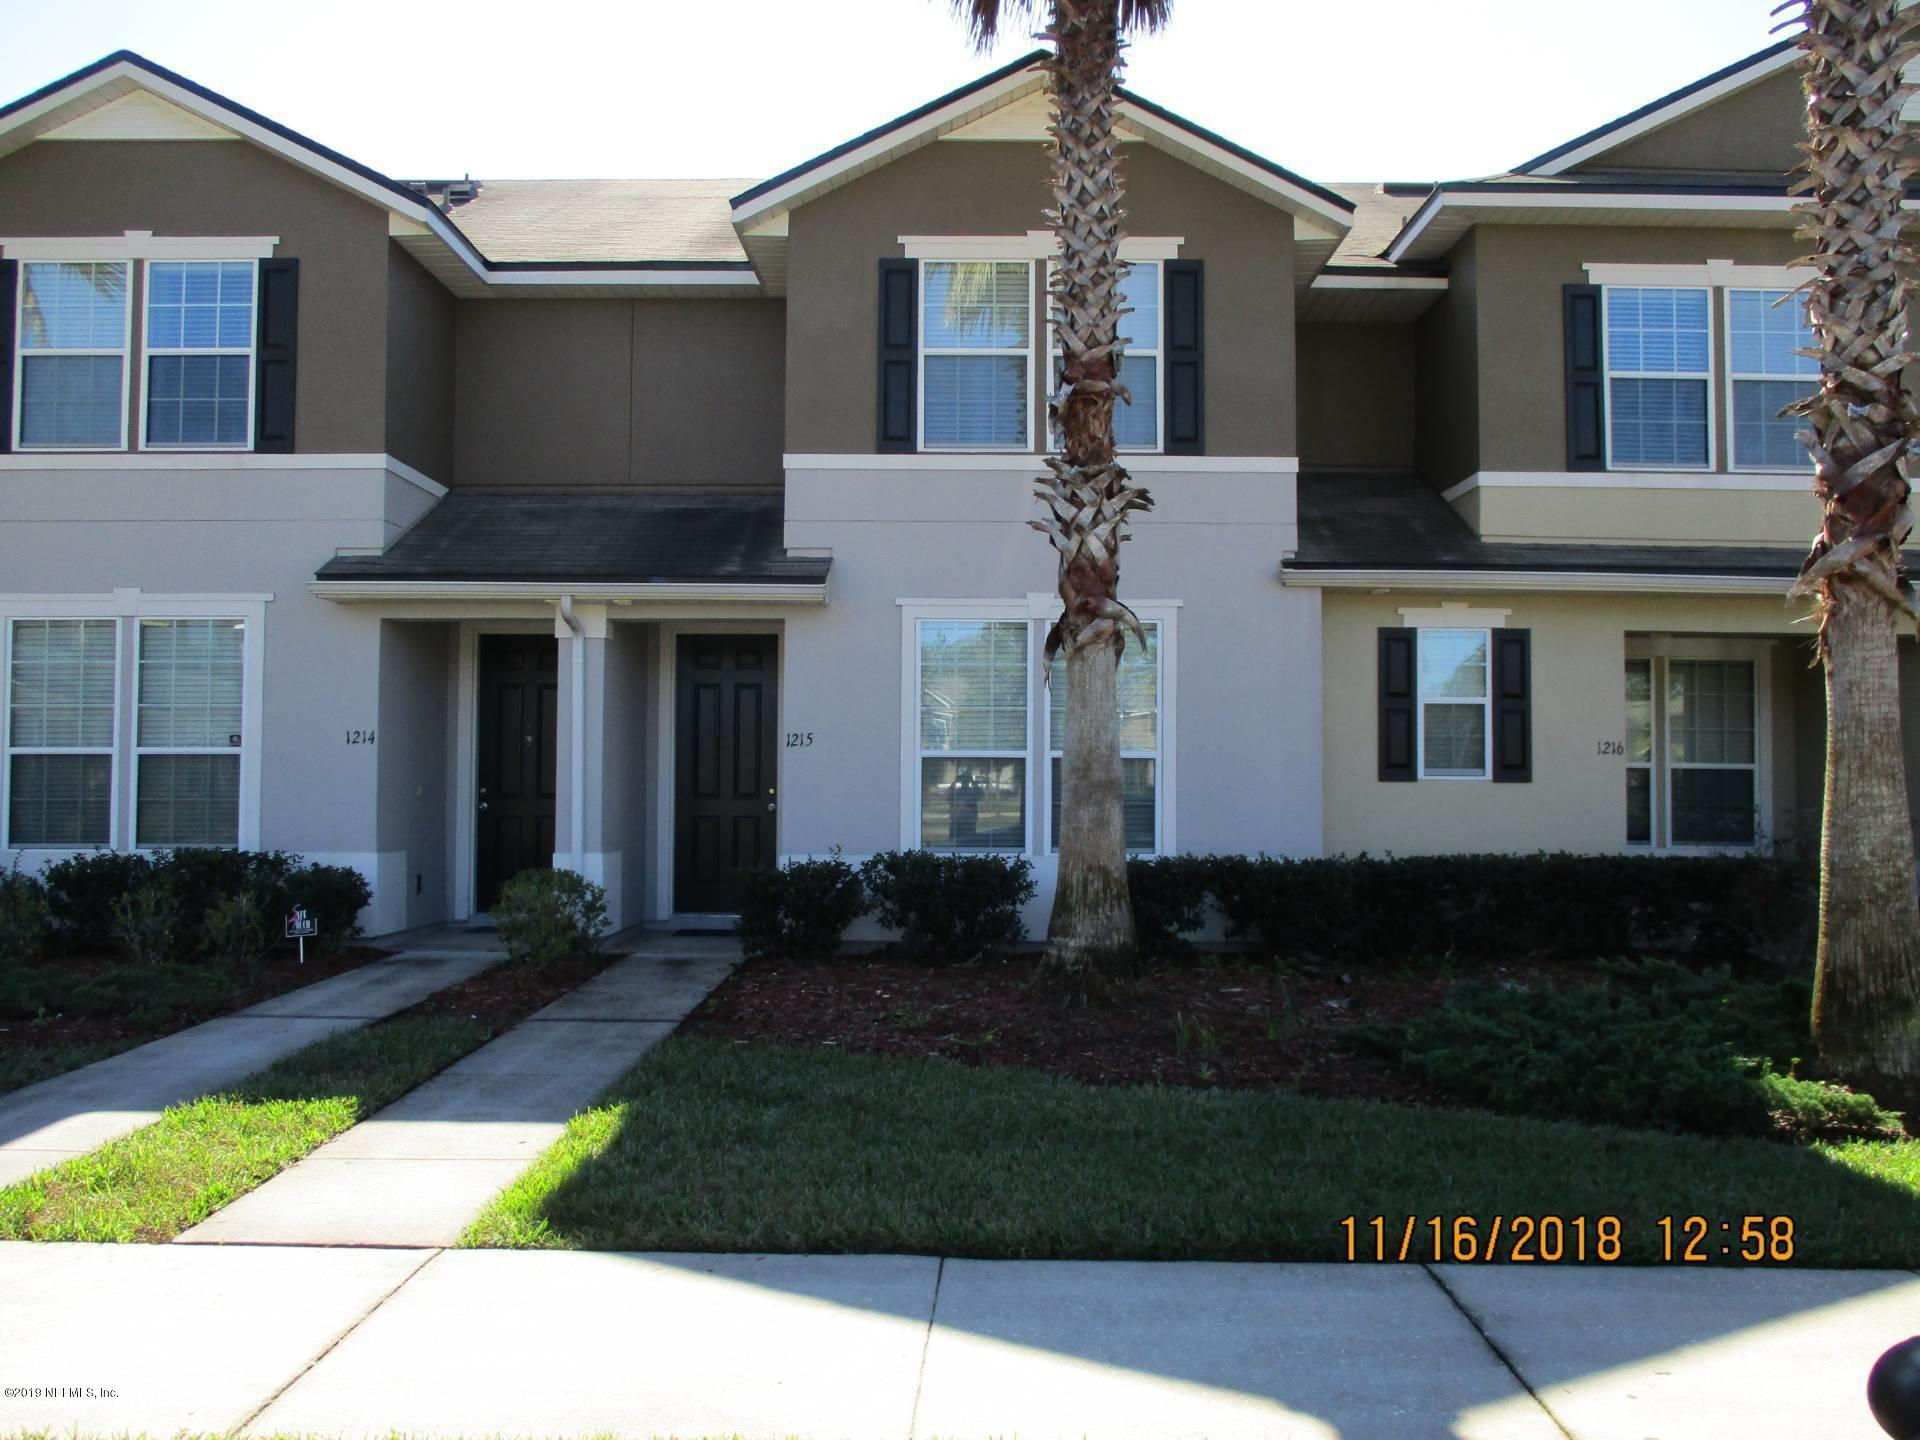 625 OAKLEAF PLANTATION, ORANGE PARK, FLORIDA 32065, 3 Bedrooms Bedrooms, ,2 BathroomsBathrooms,Condo,For sale,OAKLEAF PLANTATION,1011053